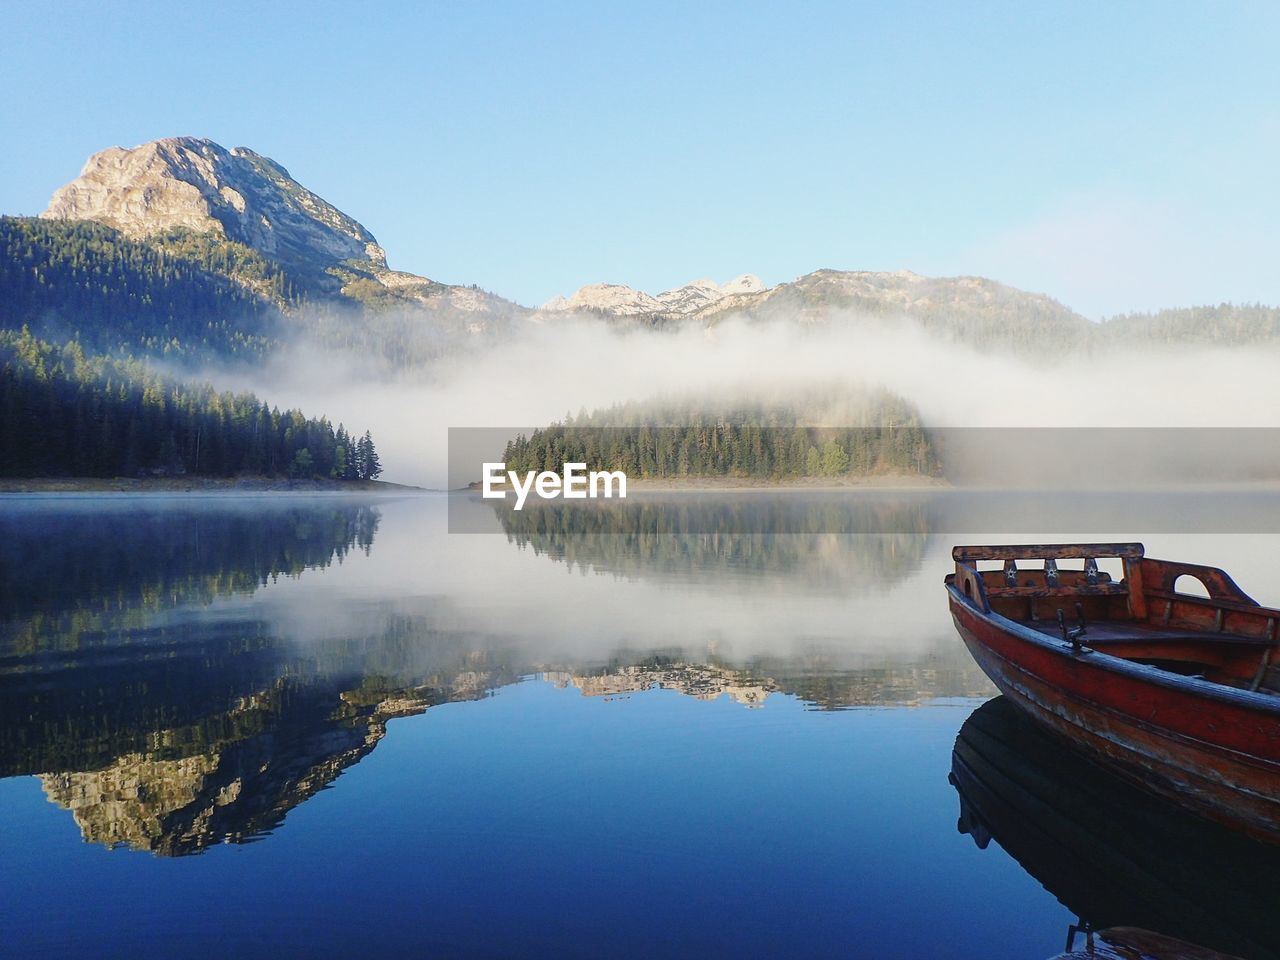 Scenic View Of Boat In Lake With Reflection During Foggy Weather